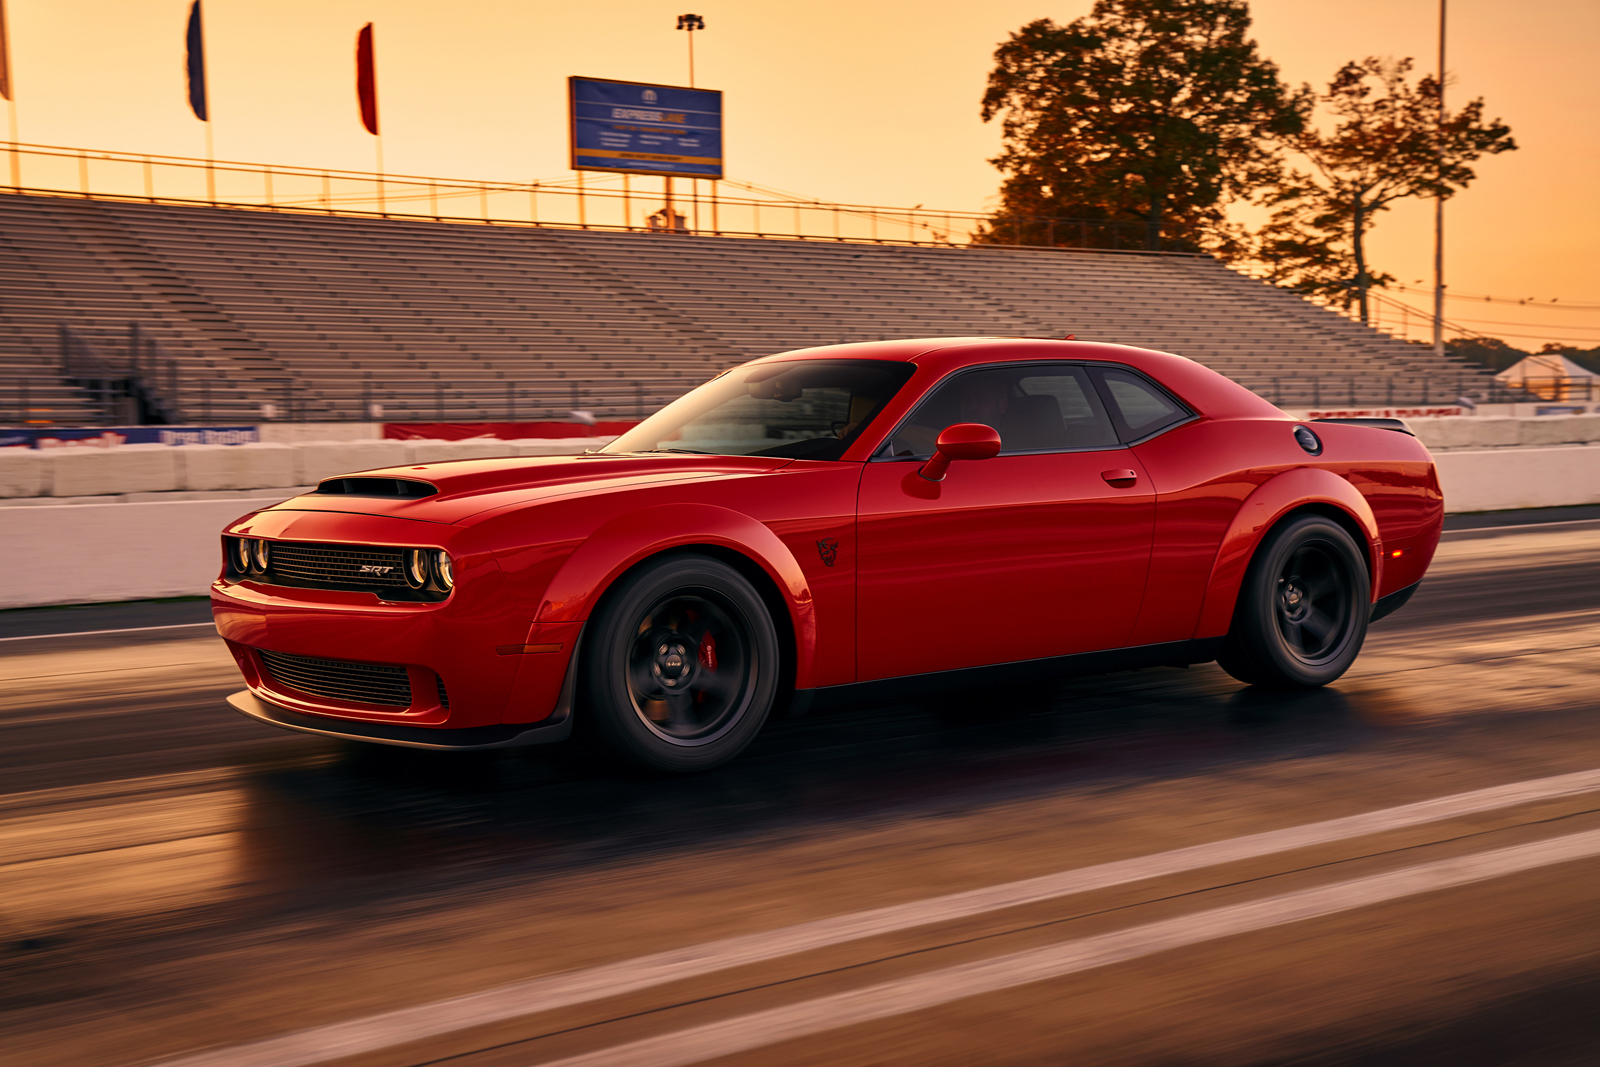 Charger Vs Challenger >> Will The Dodge Challenger SRT Demon Have 1,023 HP? | Carscoops